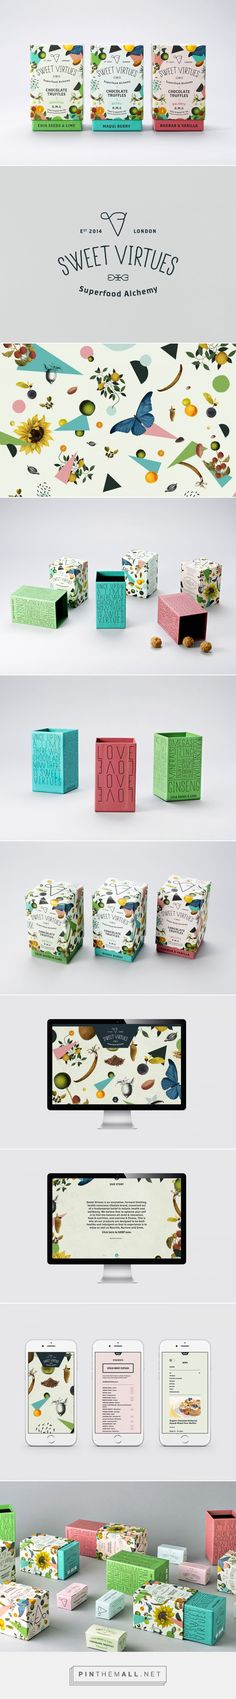 Sweet Virtues Superfood Branding and Packaging by Iwant Design | Fivestar Branding Agency – Design and Branding Agency & Curated Inspiration Gallery